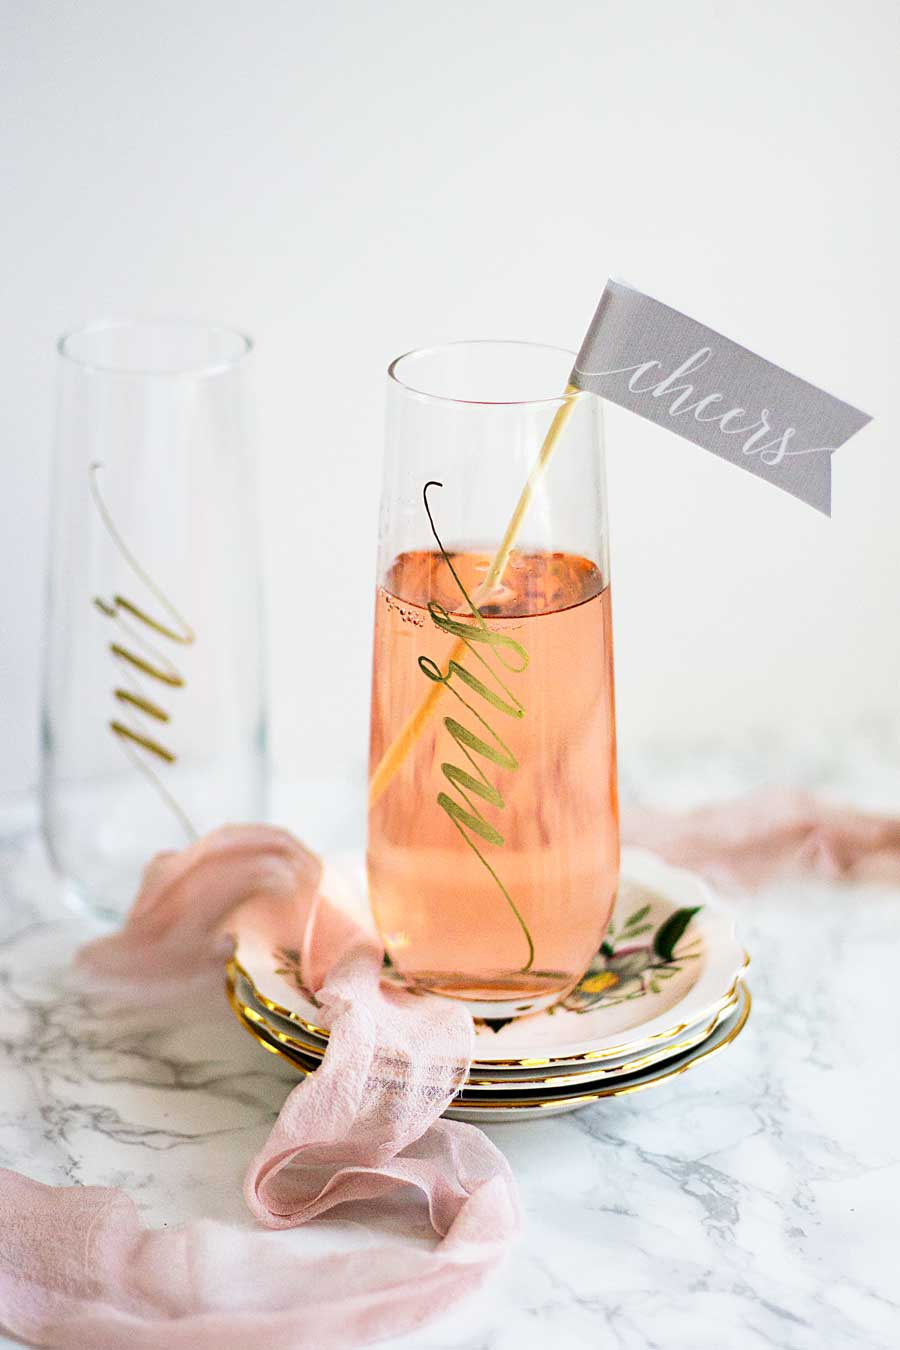 Make these fun and festive wedding champagne flutes for your own wedding or to give as gifts to all your friends. All you need are glasses and paint pen! Wedding champagne glasses. DIY wedding champagne flutes. Mr and Mrs champagne glasses.